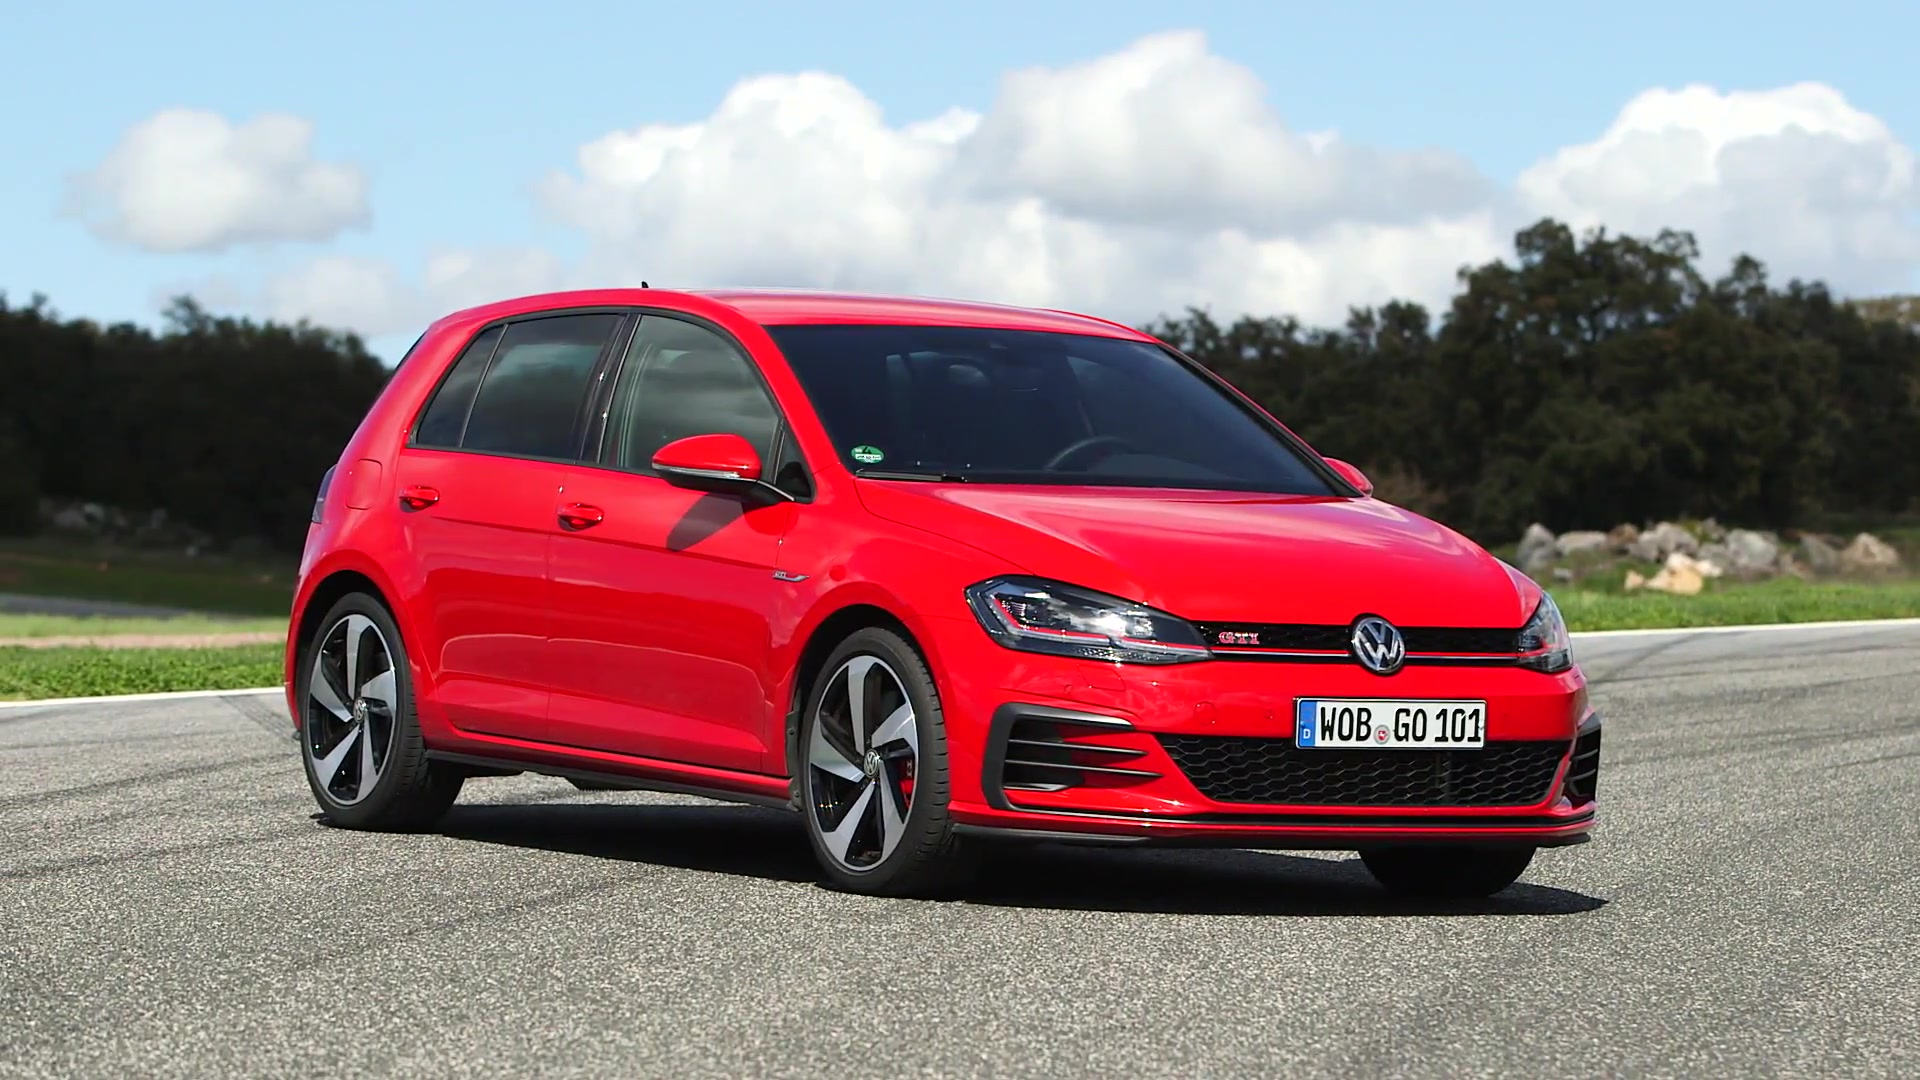 VW Golf GTI Exterior Design – GTI Driving Experience